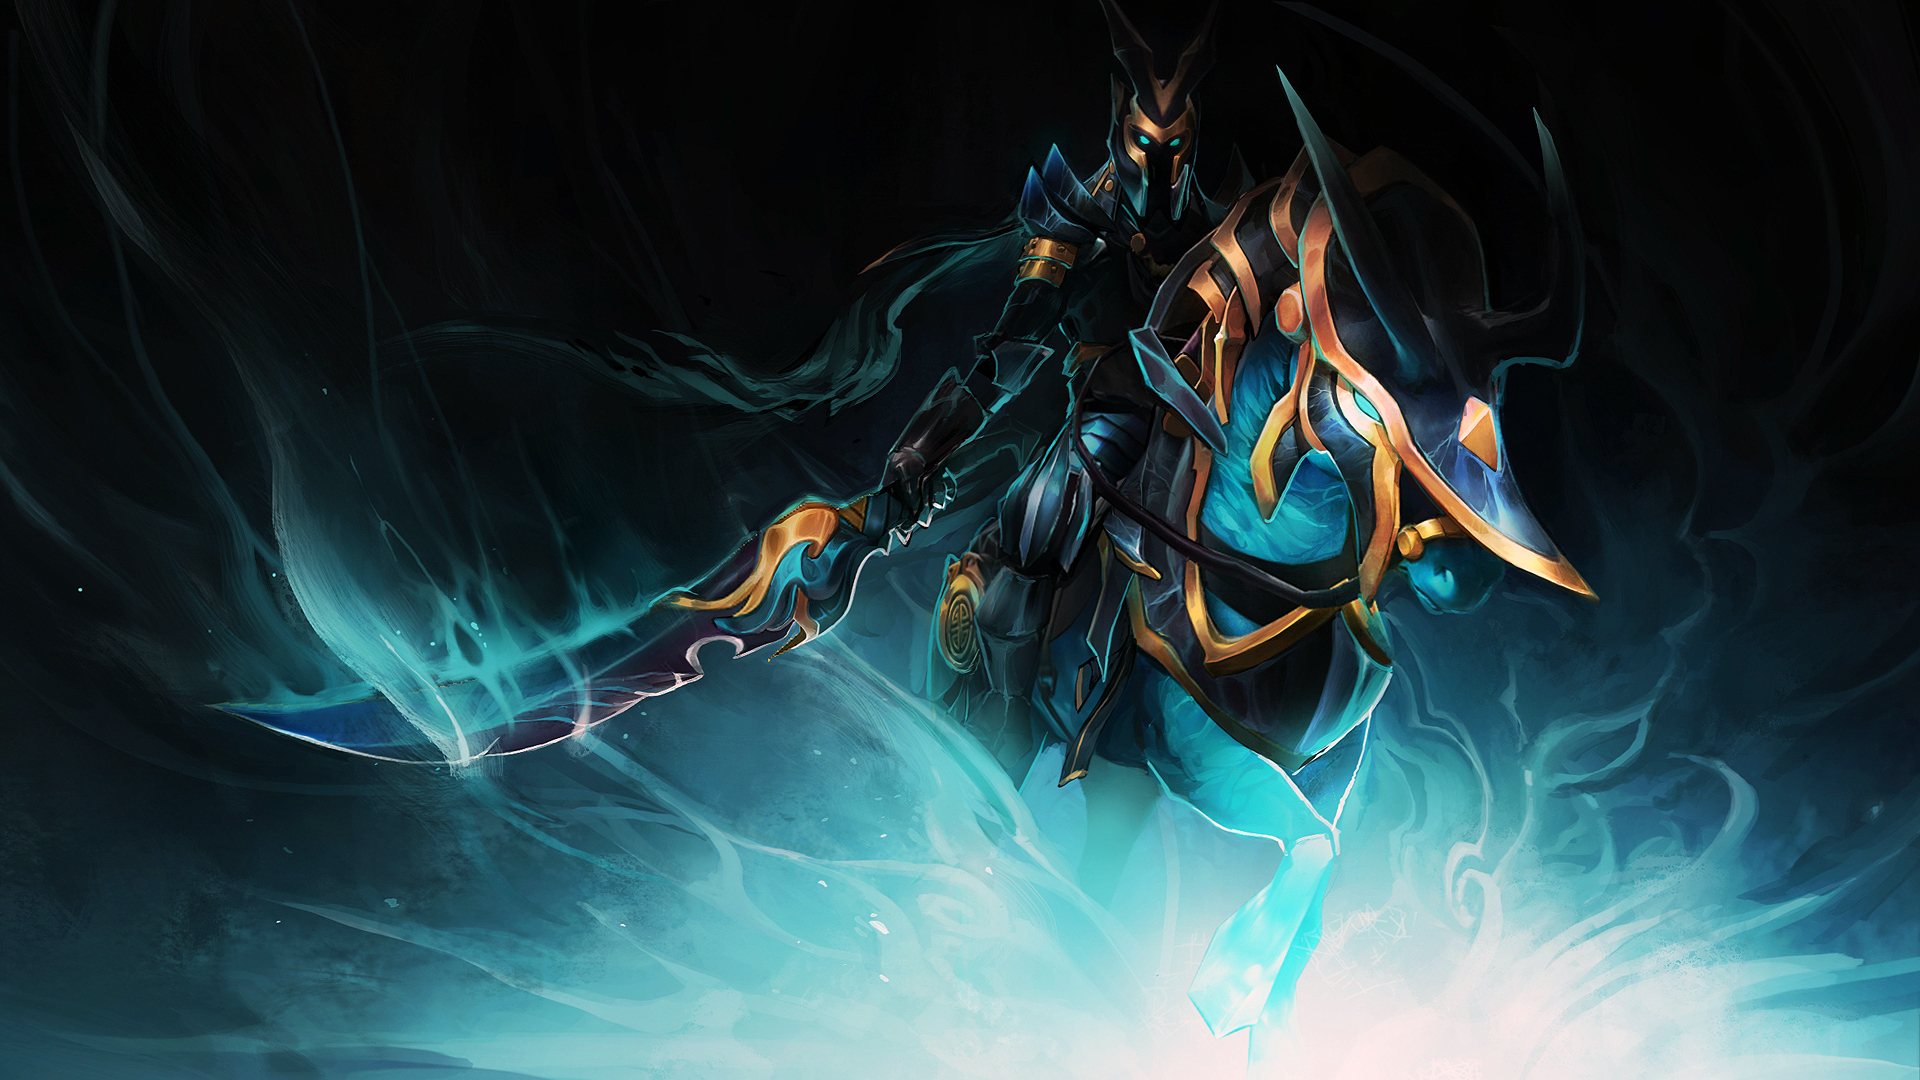 Deep Sea Ocean Desktop Wallpaper together with League Of Legends Rengar further Download Windows 8 Lock Screen Customizer To Tweak Or Disable Lock as well Attack On Titan Levi as well Flower Free Spring Screensavers. on mozilla firefox 12 html